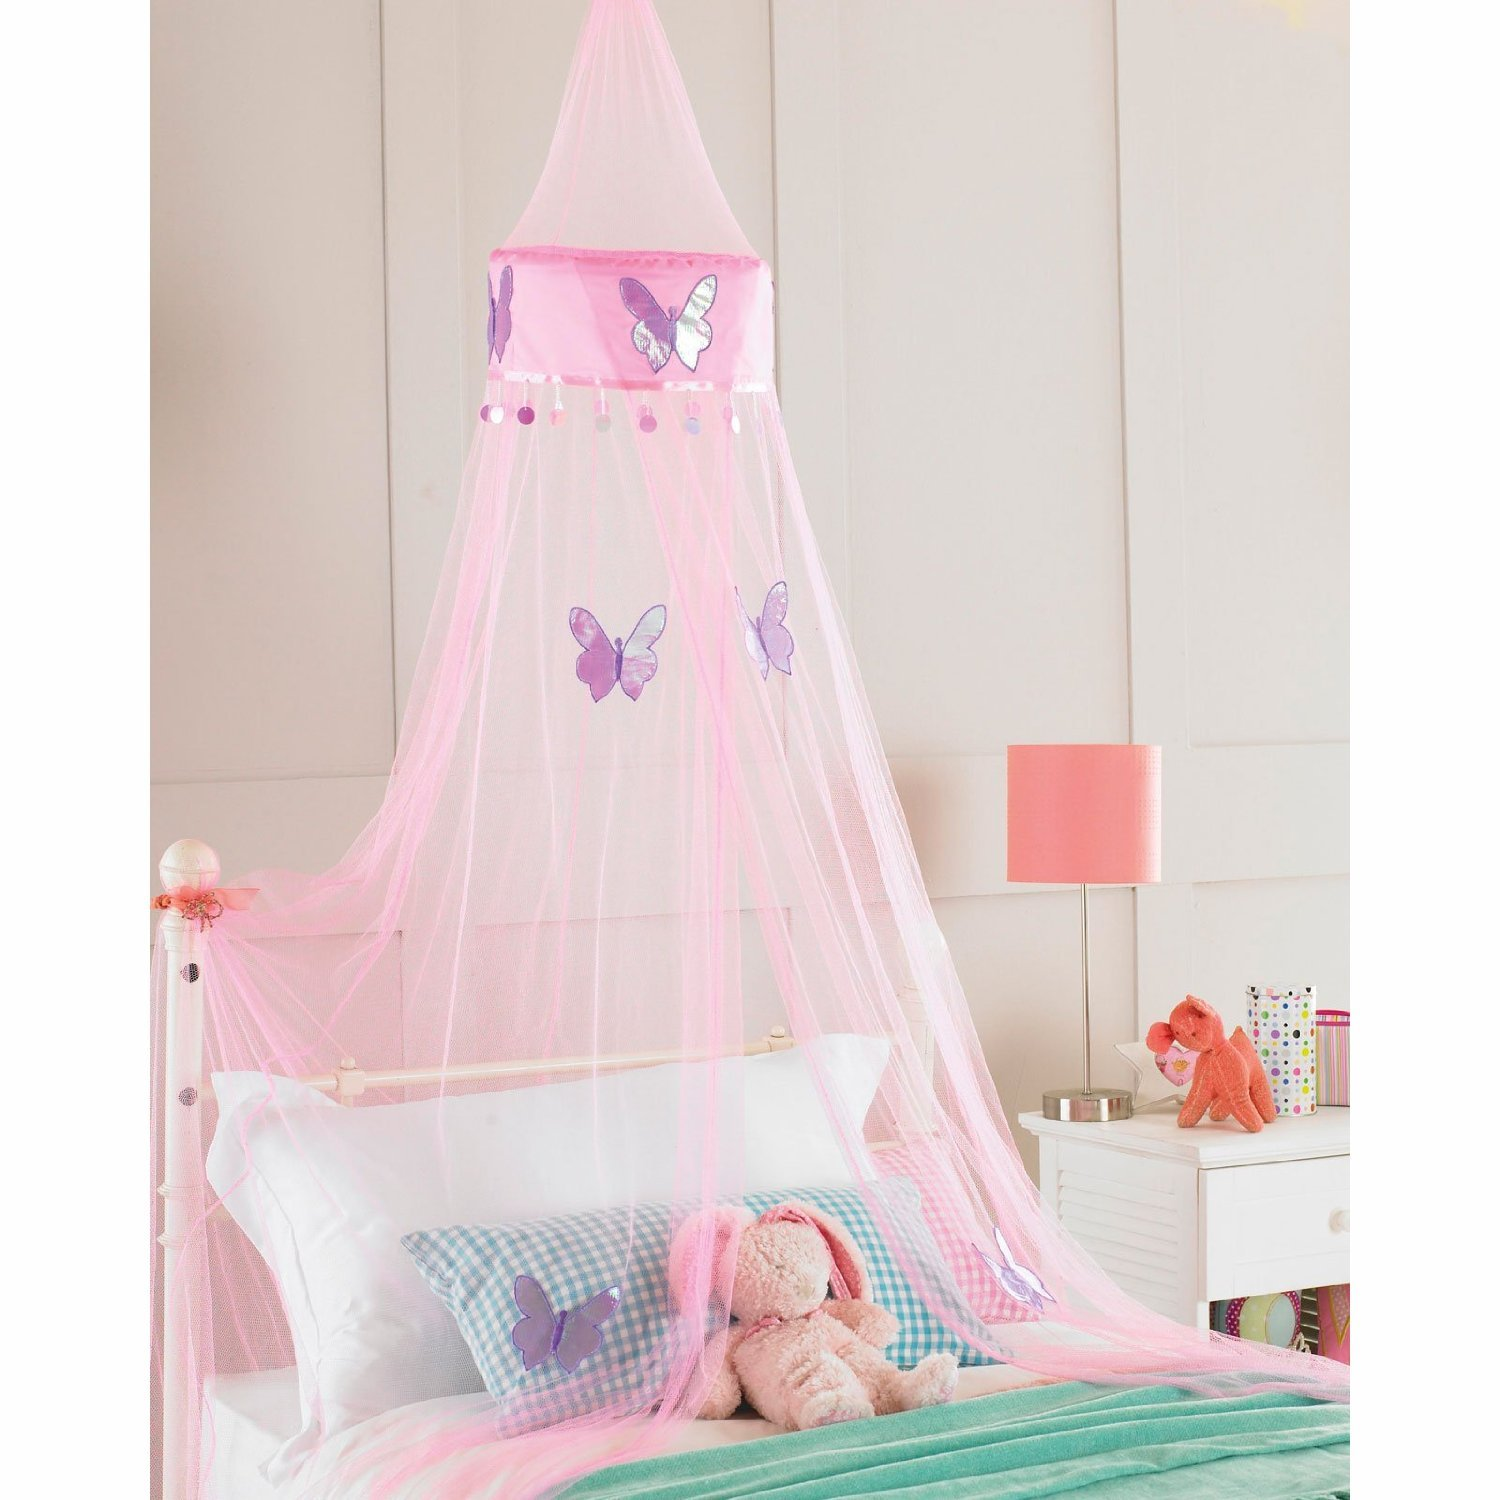 Childrens Girls Bed Canopy Mosquito Fly Netting Net 30x230cm - Pink Butterfly Amazon.co.uk Baby  sc 1 st  Amazon UK & Childrens Girls Bed Canopy Mosquito Fly Netting Net 30x230cm ...